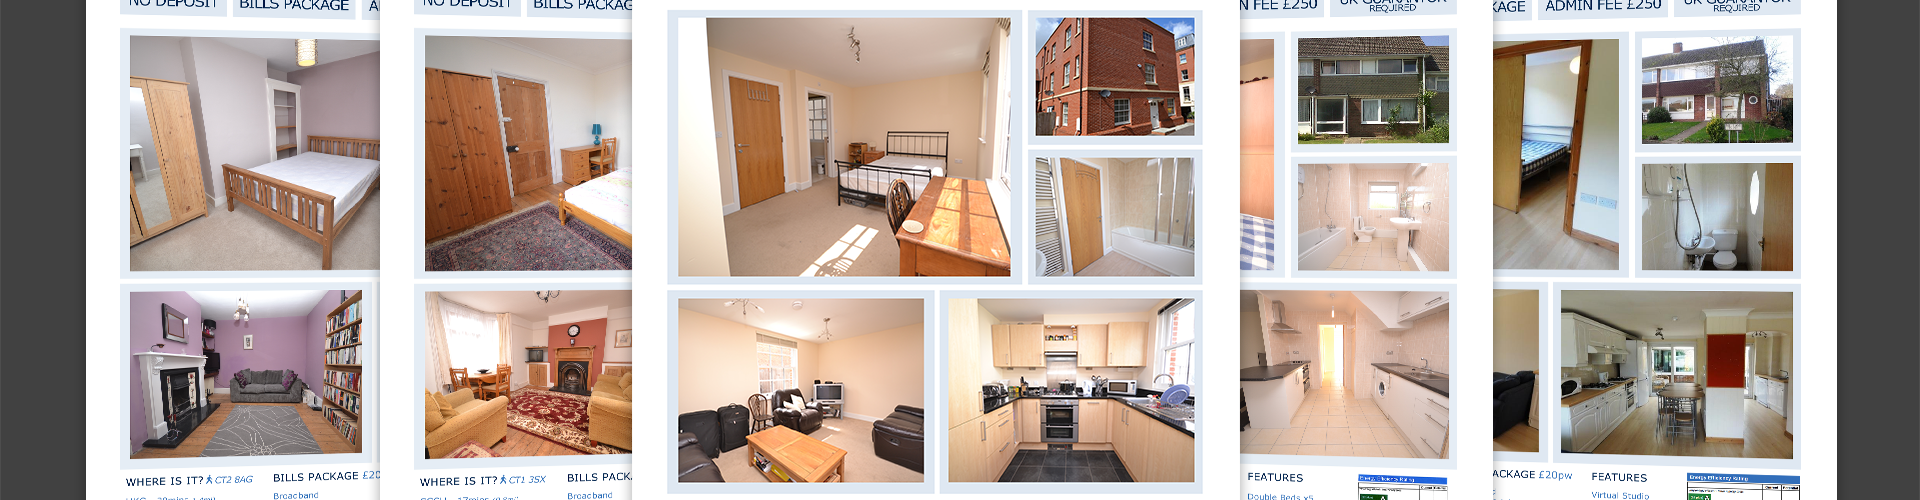 Leydon Lettings – Placement